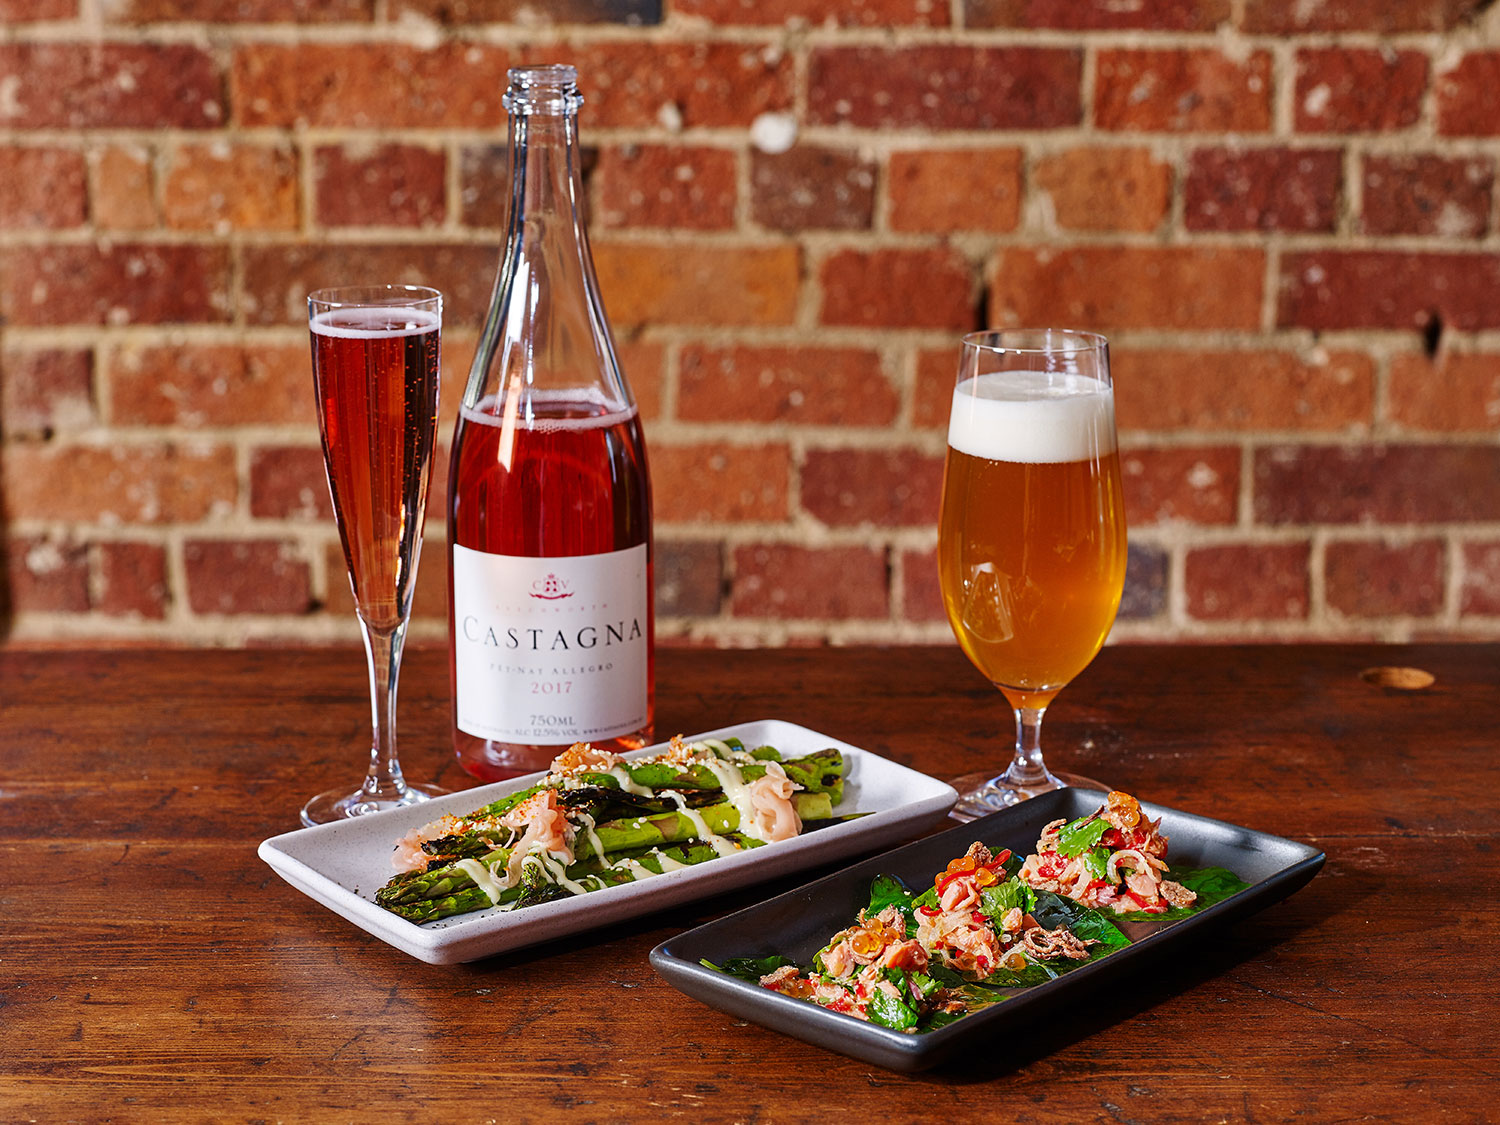 Grilled Asparagus with miso mayo; Betel Leaves with smoked trout and chilli jam